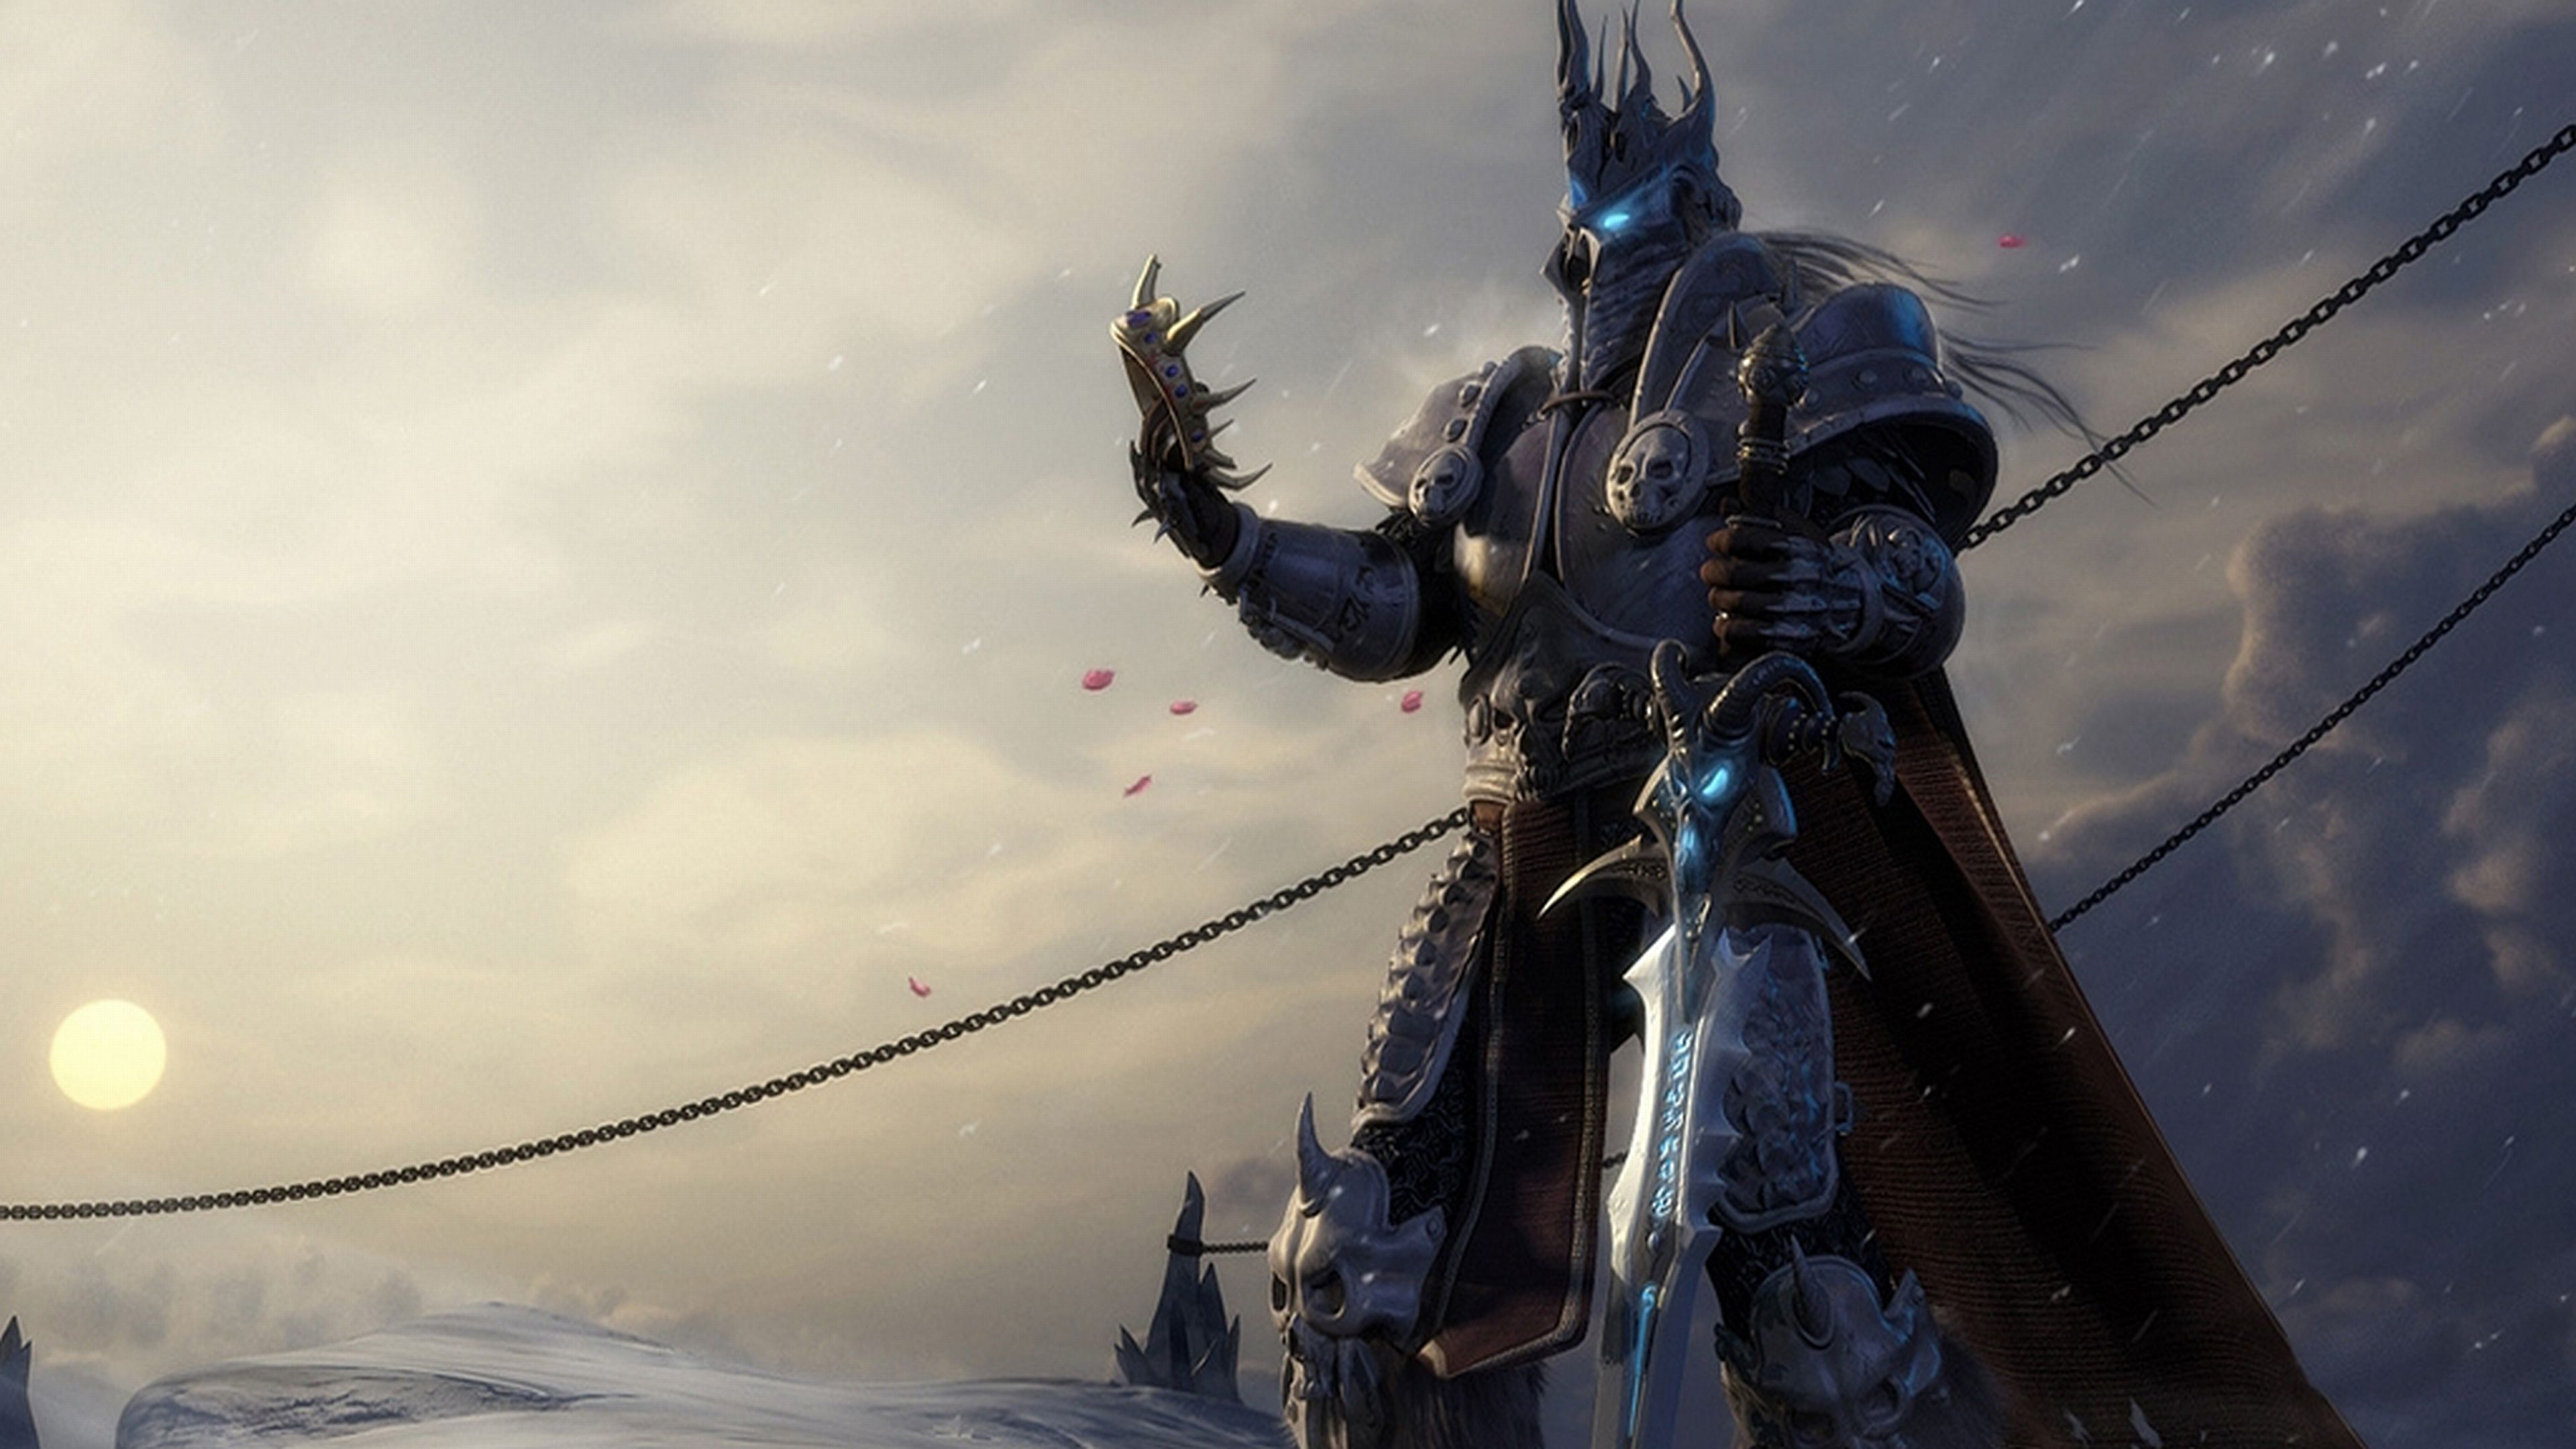 4k Gaming Wallpapers Images Is Cool Wallpapers Projects